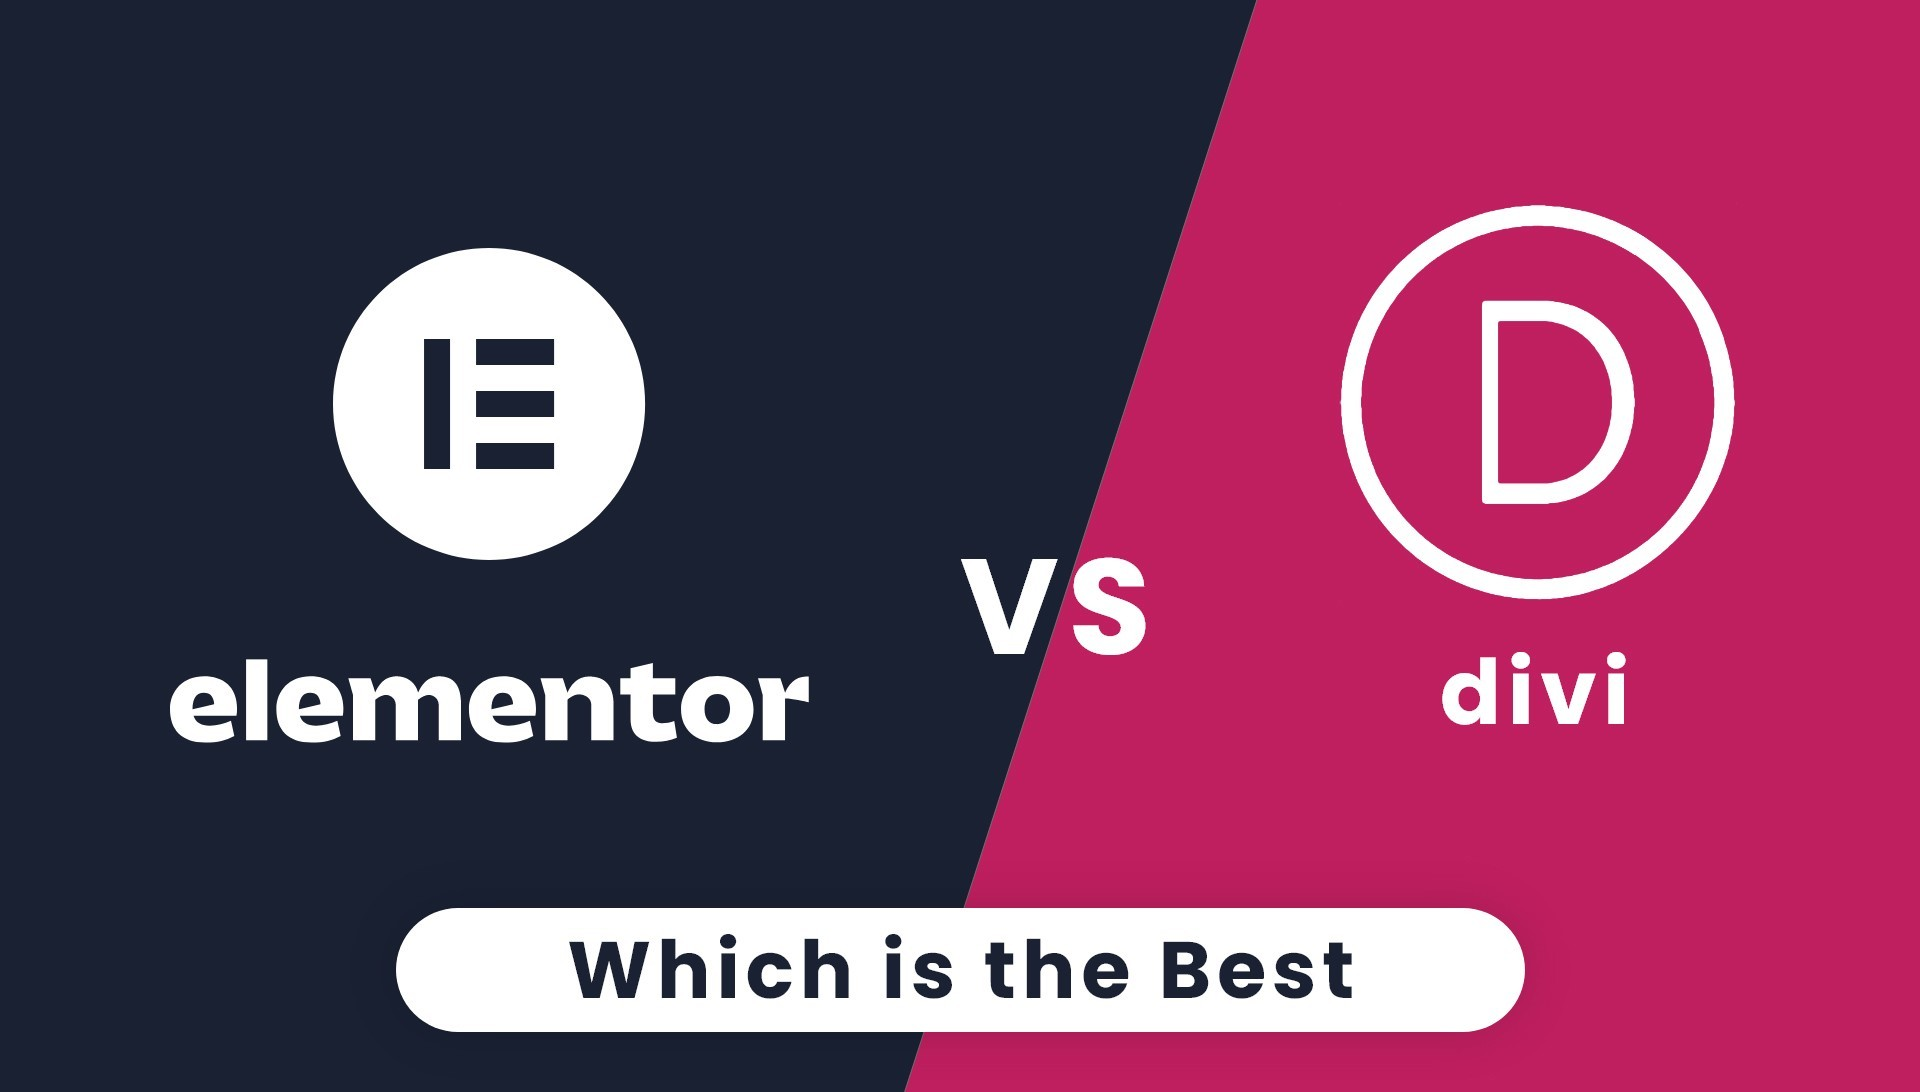 DIVI VS ELEMENTOR – WHICH IS THE BEST